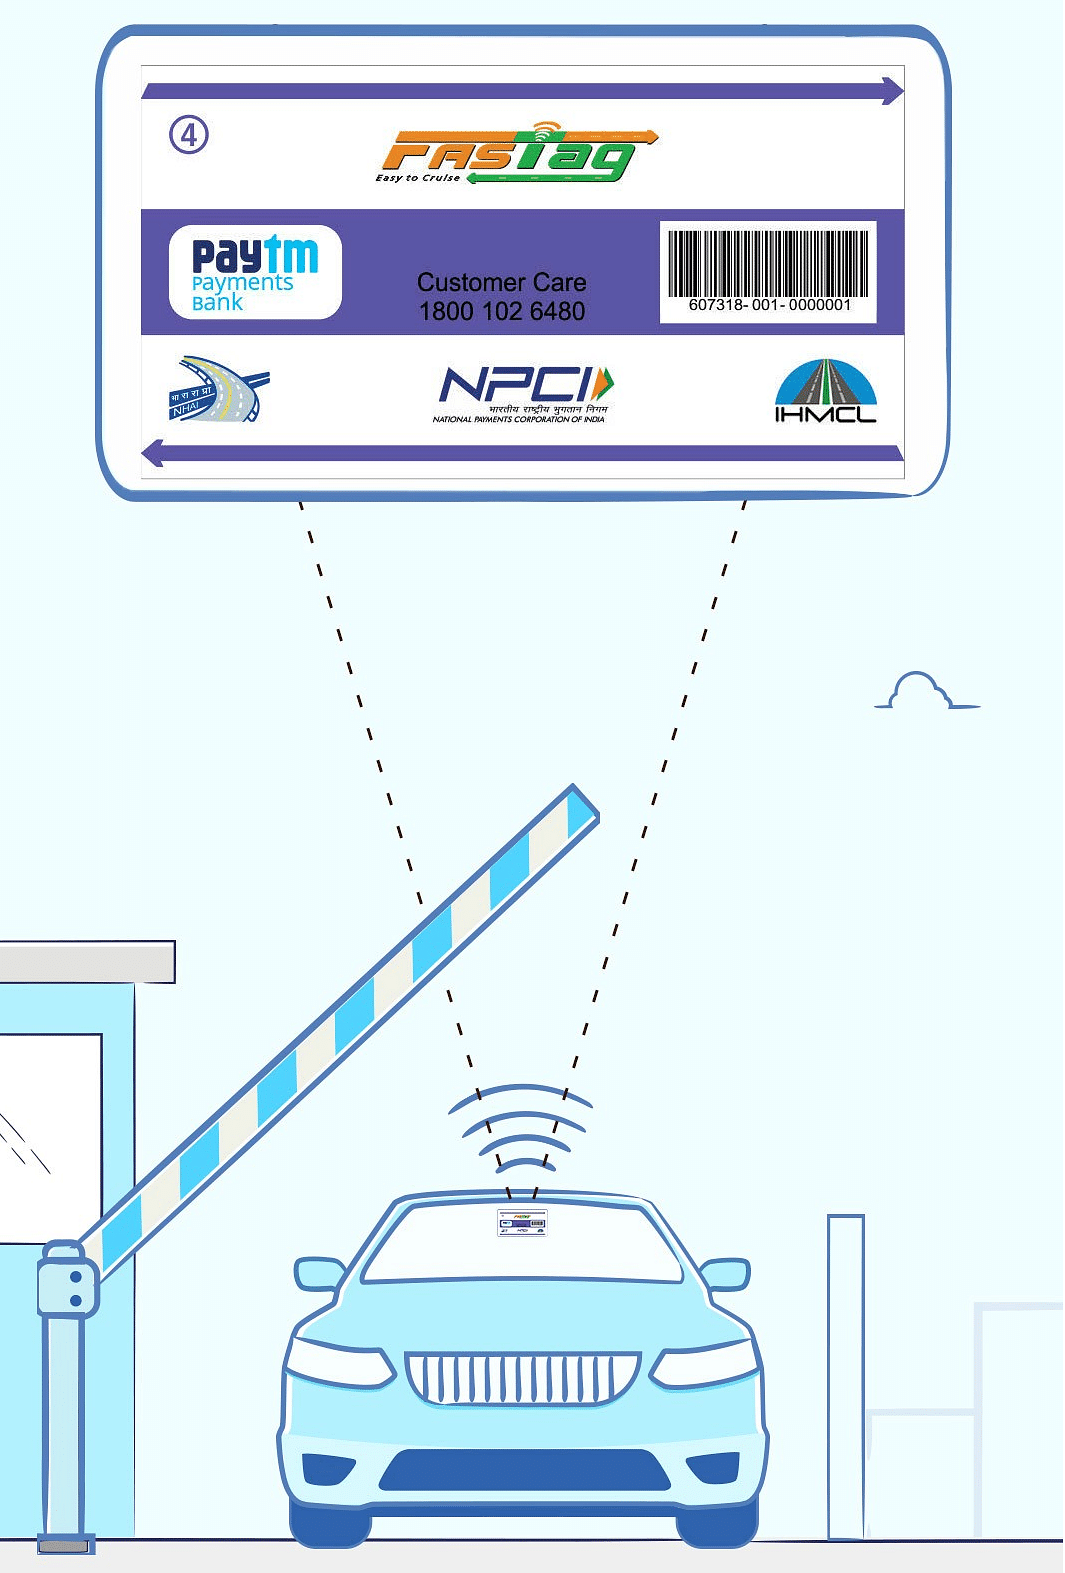 FASTag is an RFID sticker that electronically handles toll payments.